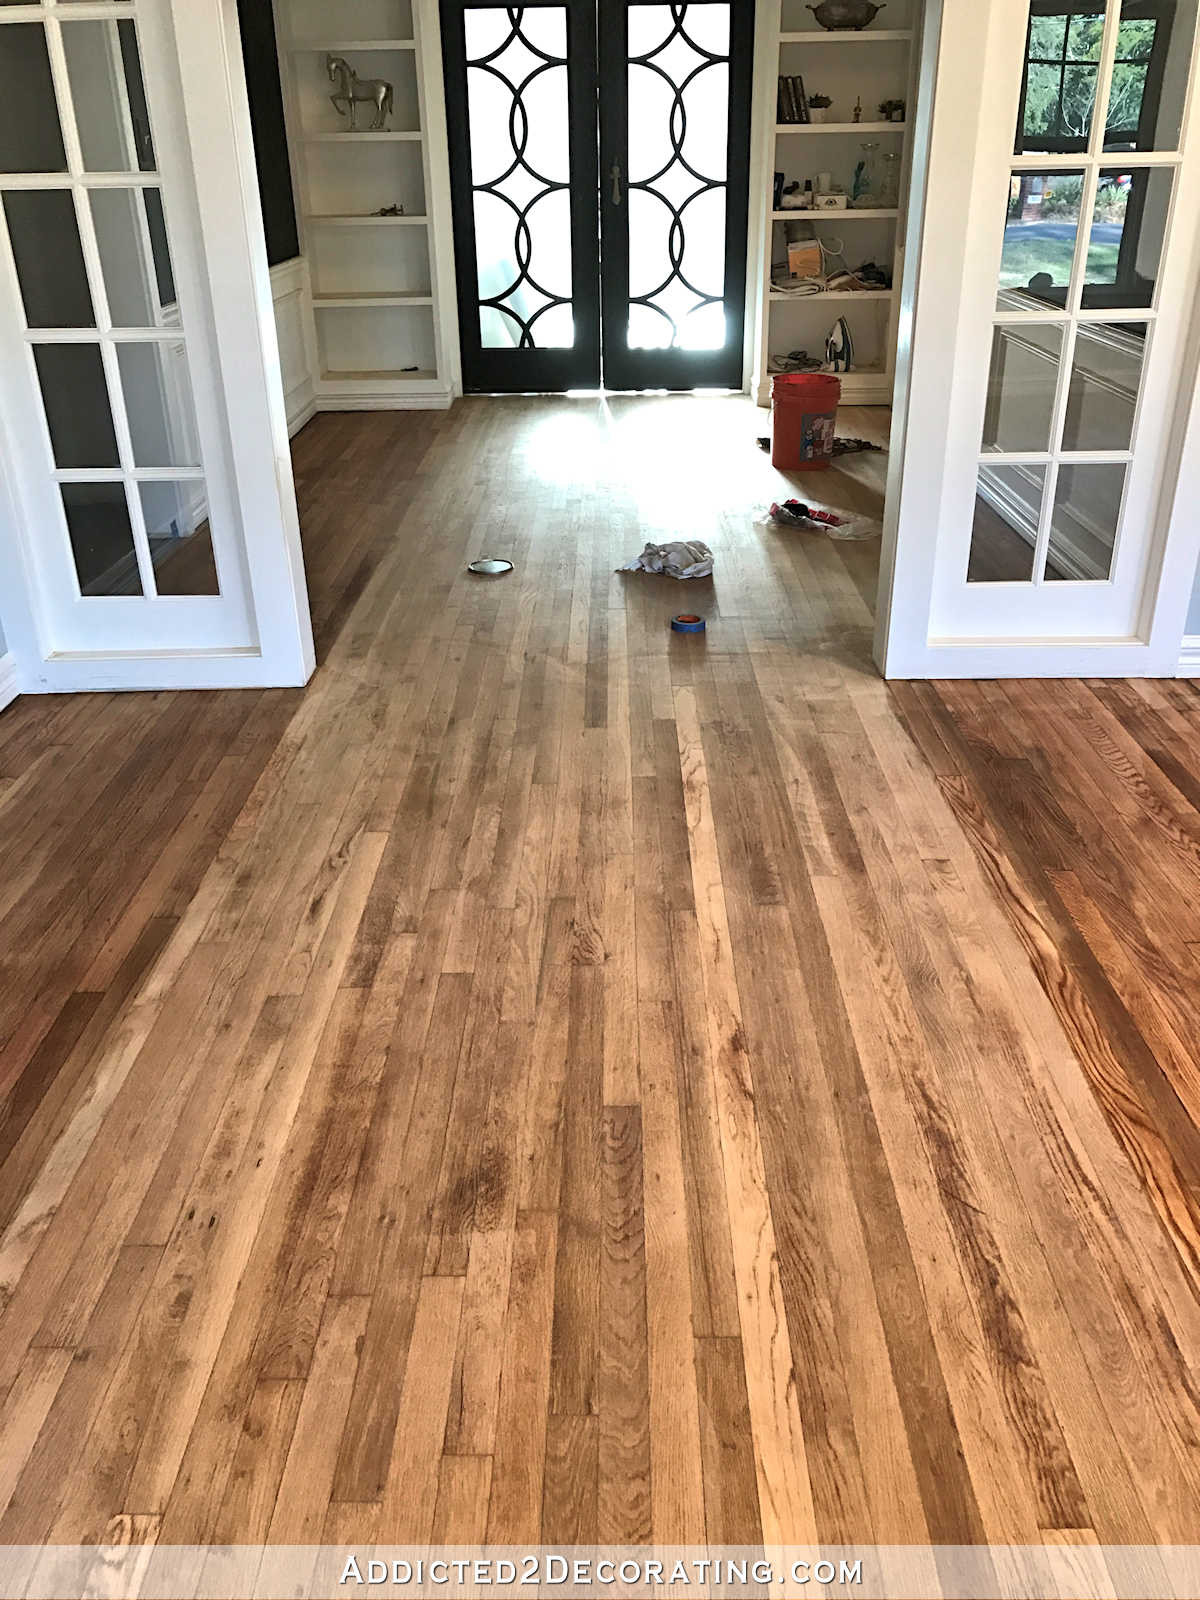 maple hardwood flooring ottawa of sanding hardwood floors diy floor with sanding hardwood floors diy adventures in staining my red oak hardwood floors products process